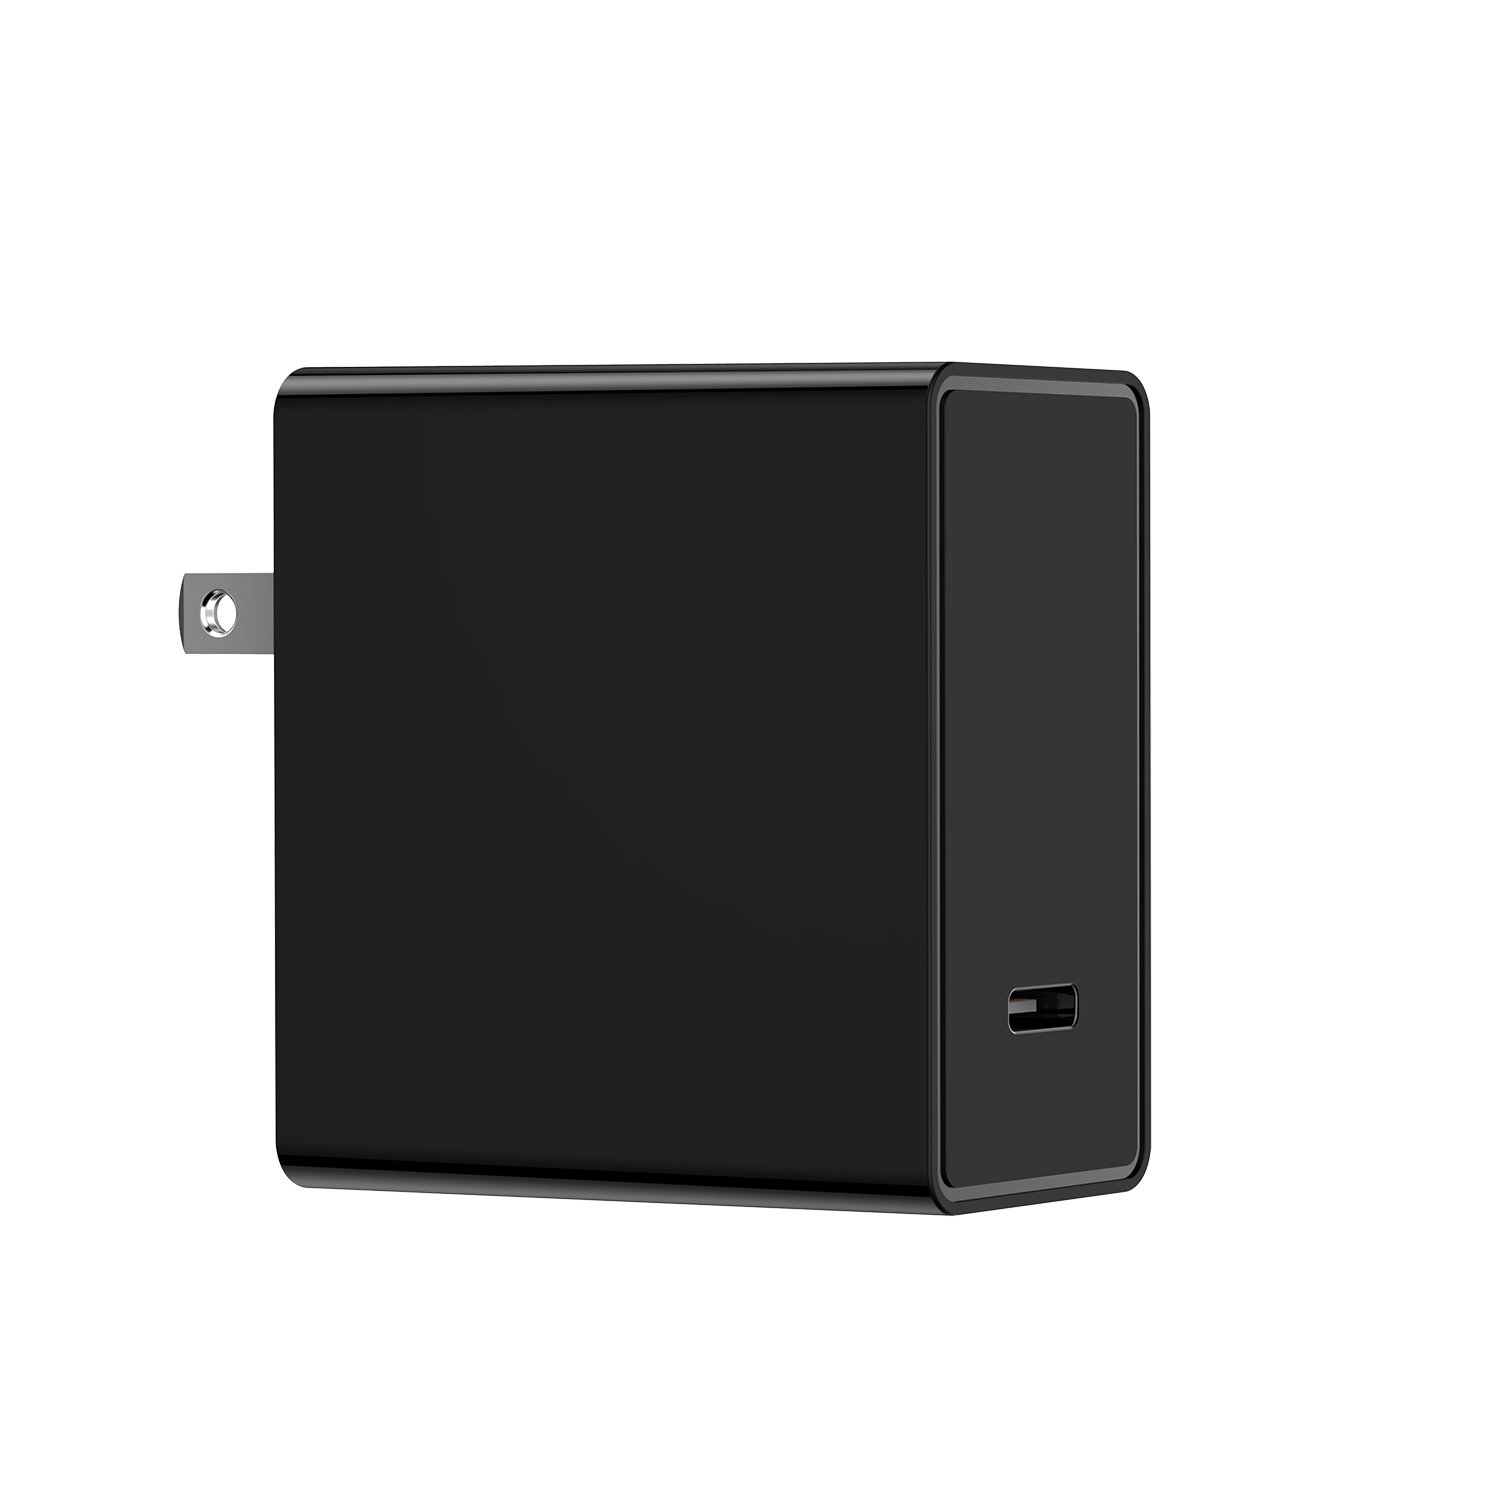 USB Type C Wall Charger, TORRAS 45W Fast Charger with PD/QC 3.0 Power Delivery Compatible for Laptop, Macbook/iPad Pro, iPhone Xs/Xs Max/XR, Google Pixel 3XL, Samsung Galaxy S9 Plus/S8 and more- Black by TORRAS